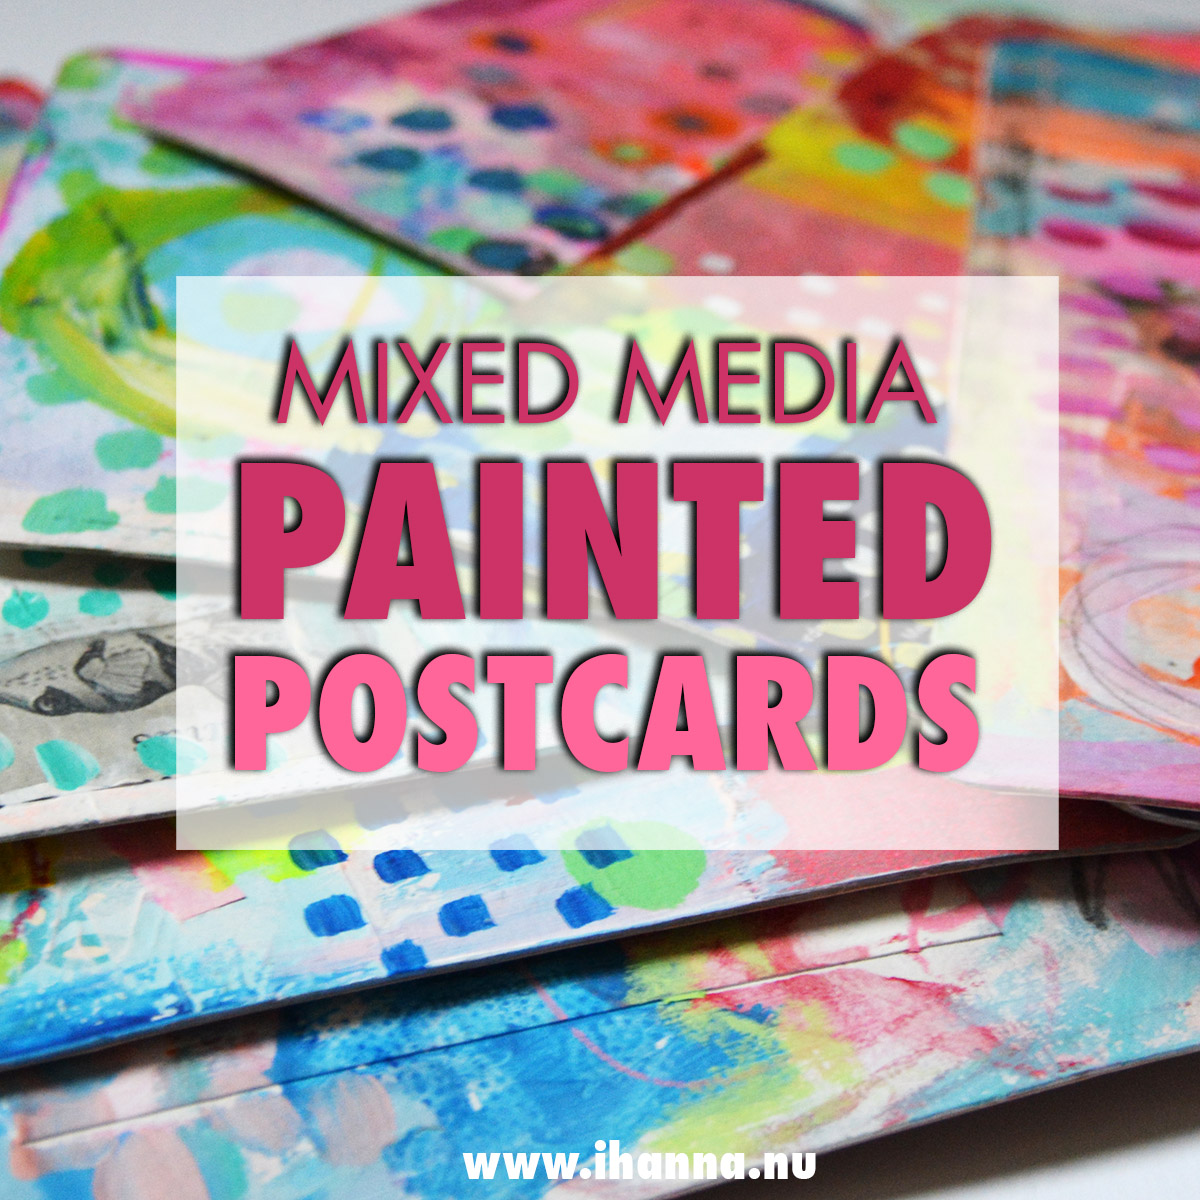 Mixed Media Painted Postcards